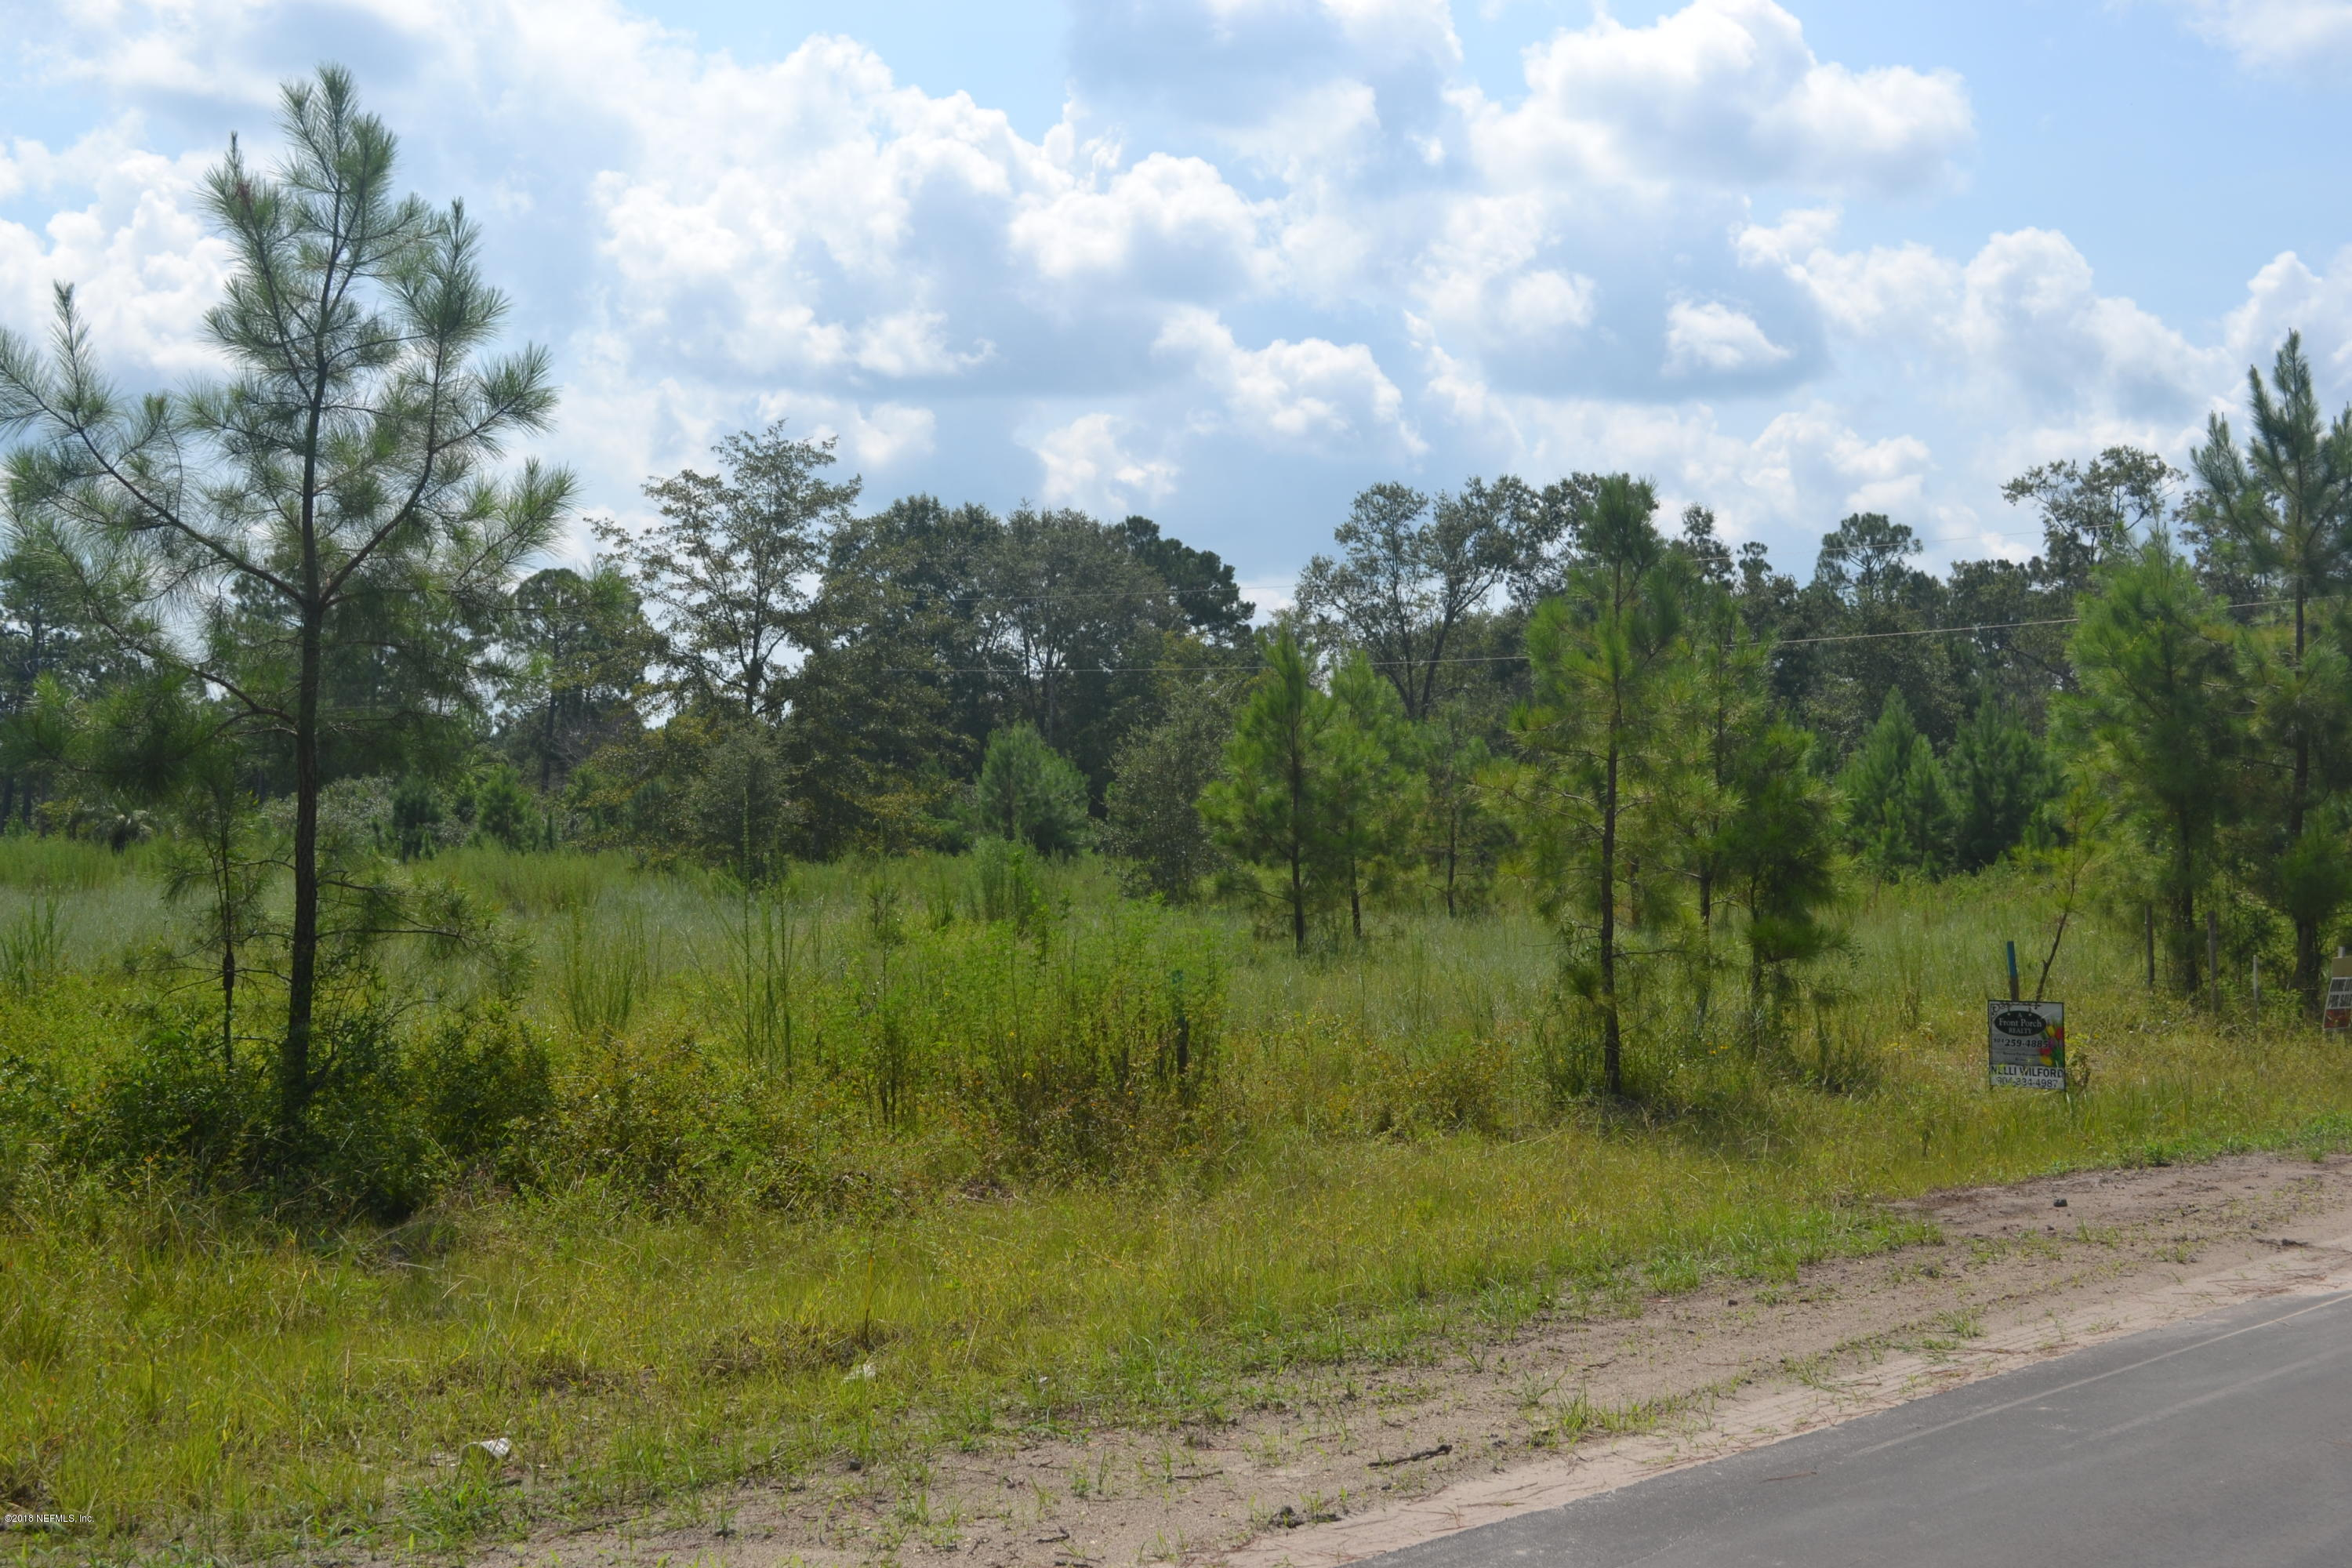 0 WOLFE, MACCLENNY, FLORIDA 32063, ,Vacant land,For sale,WOLFE,953809